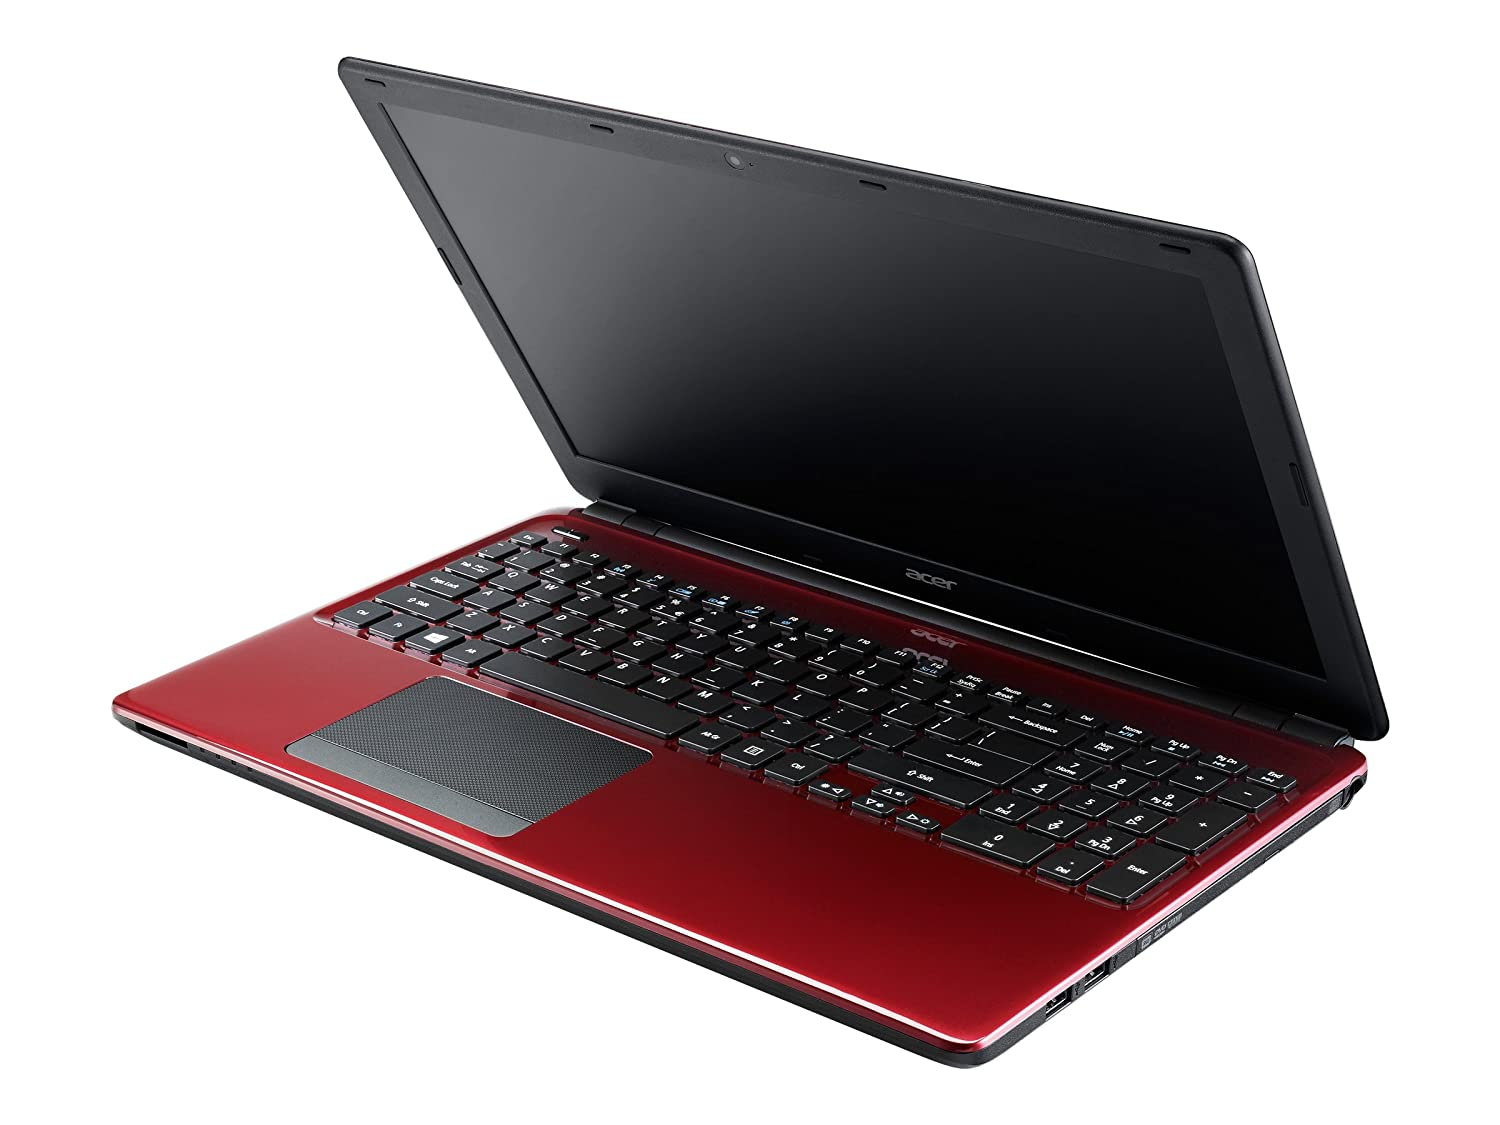 Acer Aspire 532-2635 - Ordenador portátil (2957U, DVD±RW, Touchpad, Windows 7 Professional, Ión de litio, 64 bits): Amazon.es: Informática